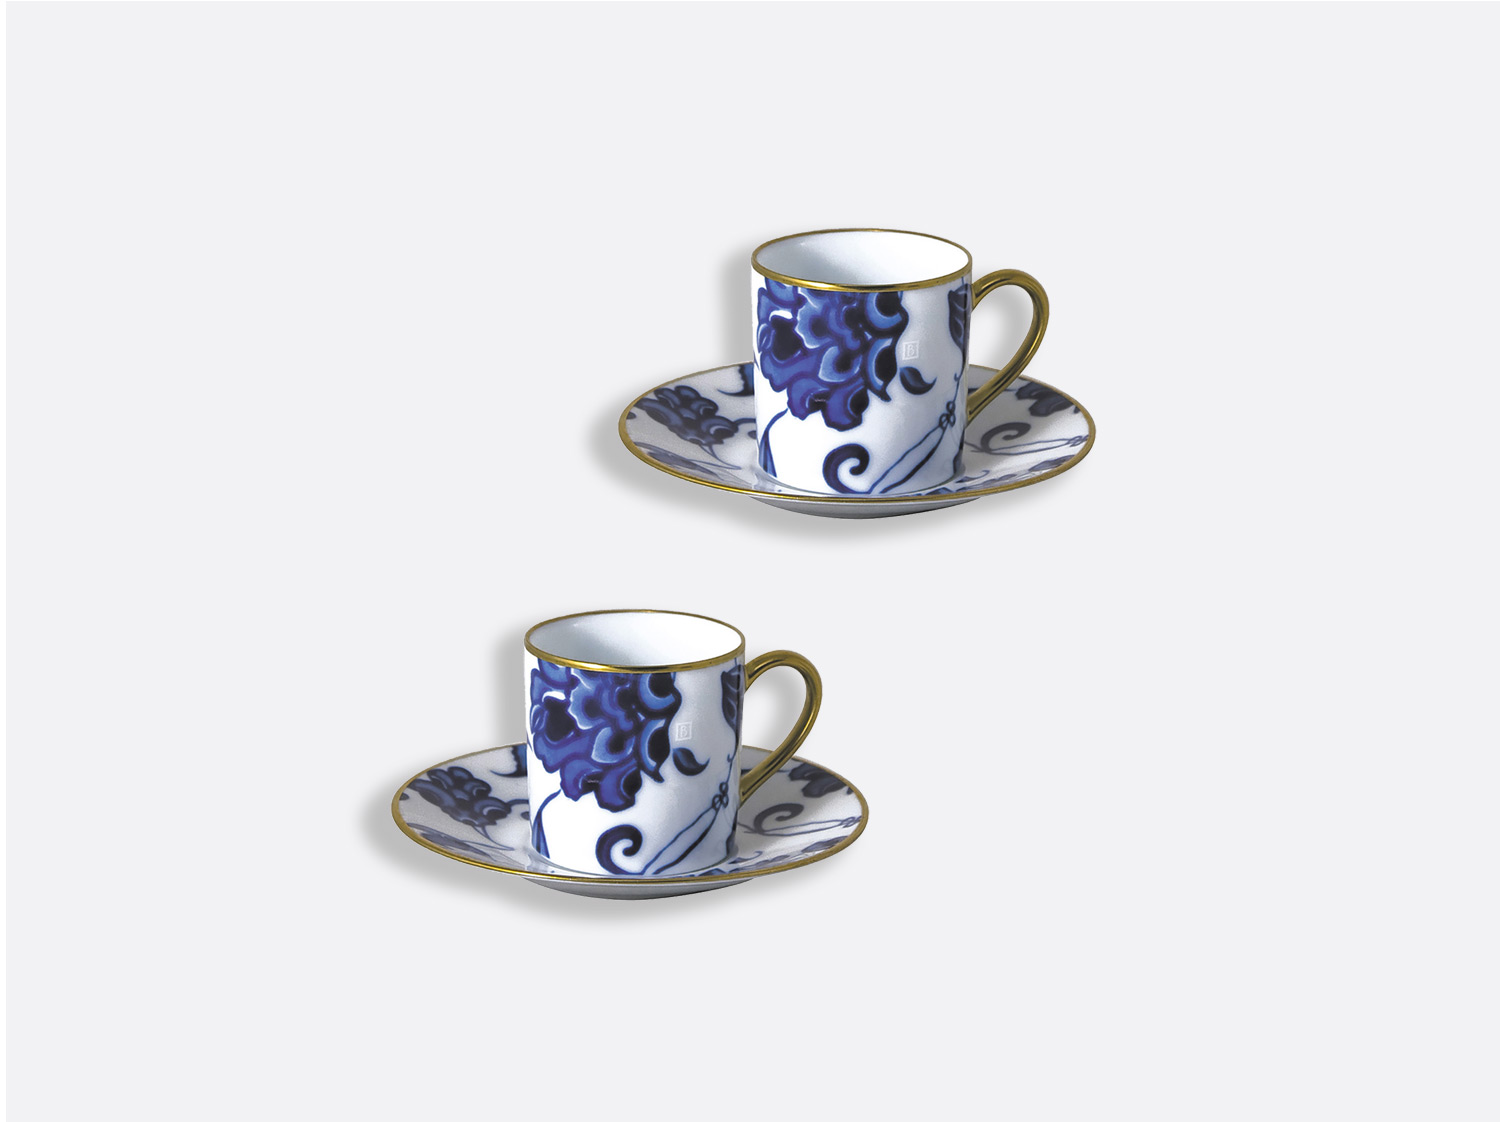 Coffret de tasses & soucoupes café 8 cl - Coffret de 2 en porcelaine de la collection Prince bleu Bernardaud